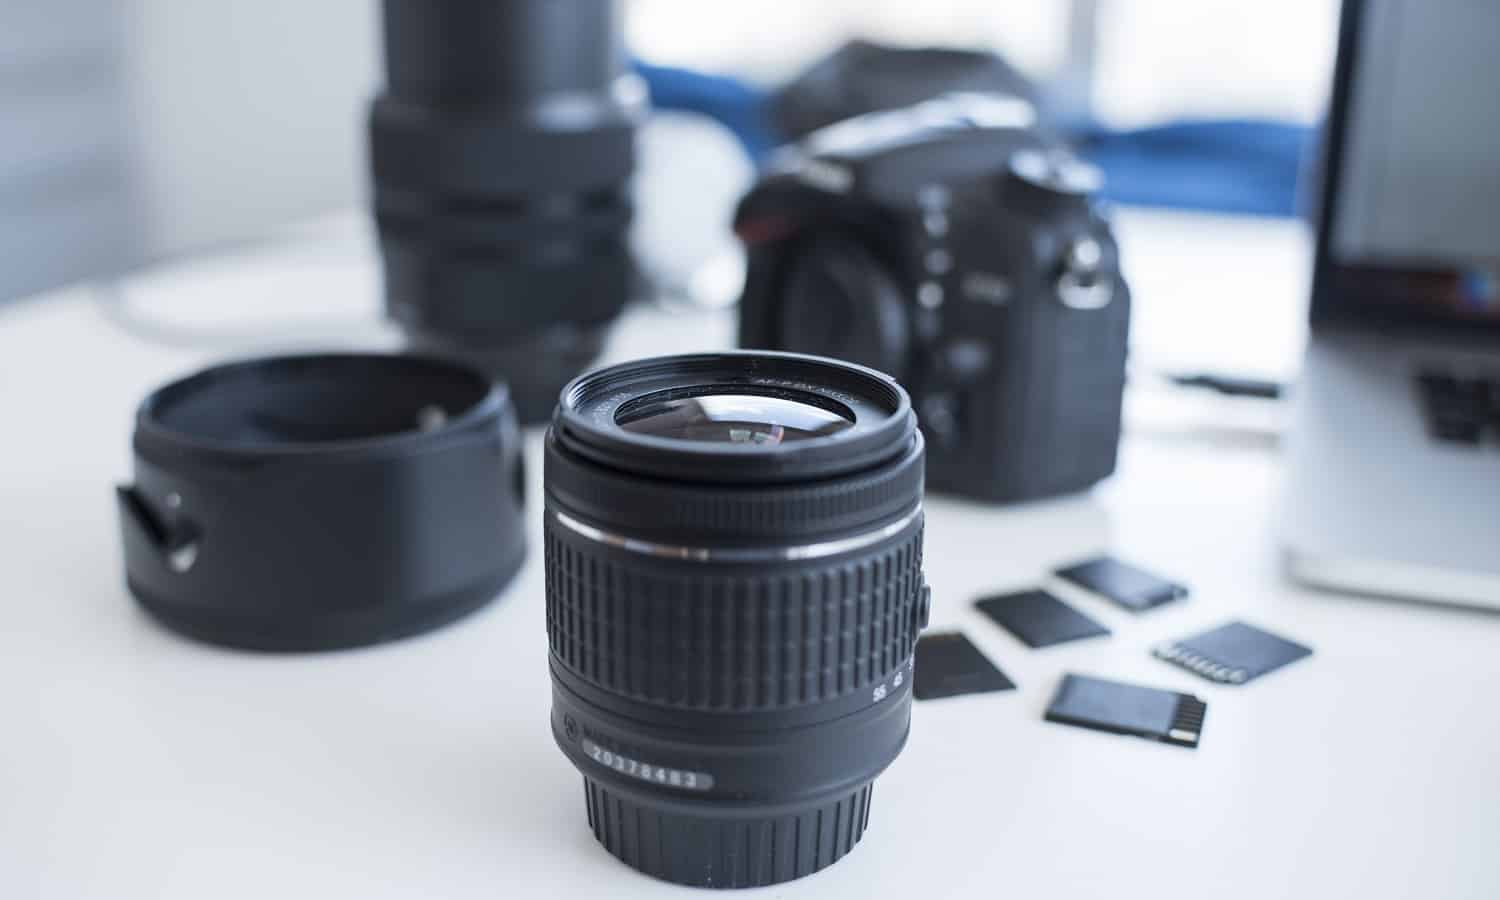 7 best lenses for building photography today 03